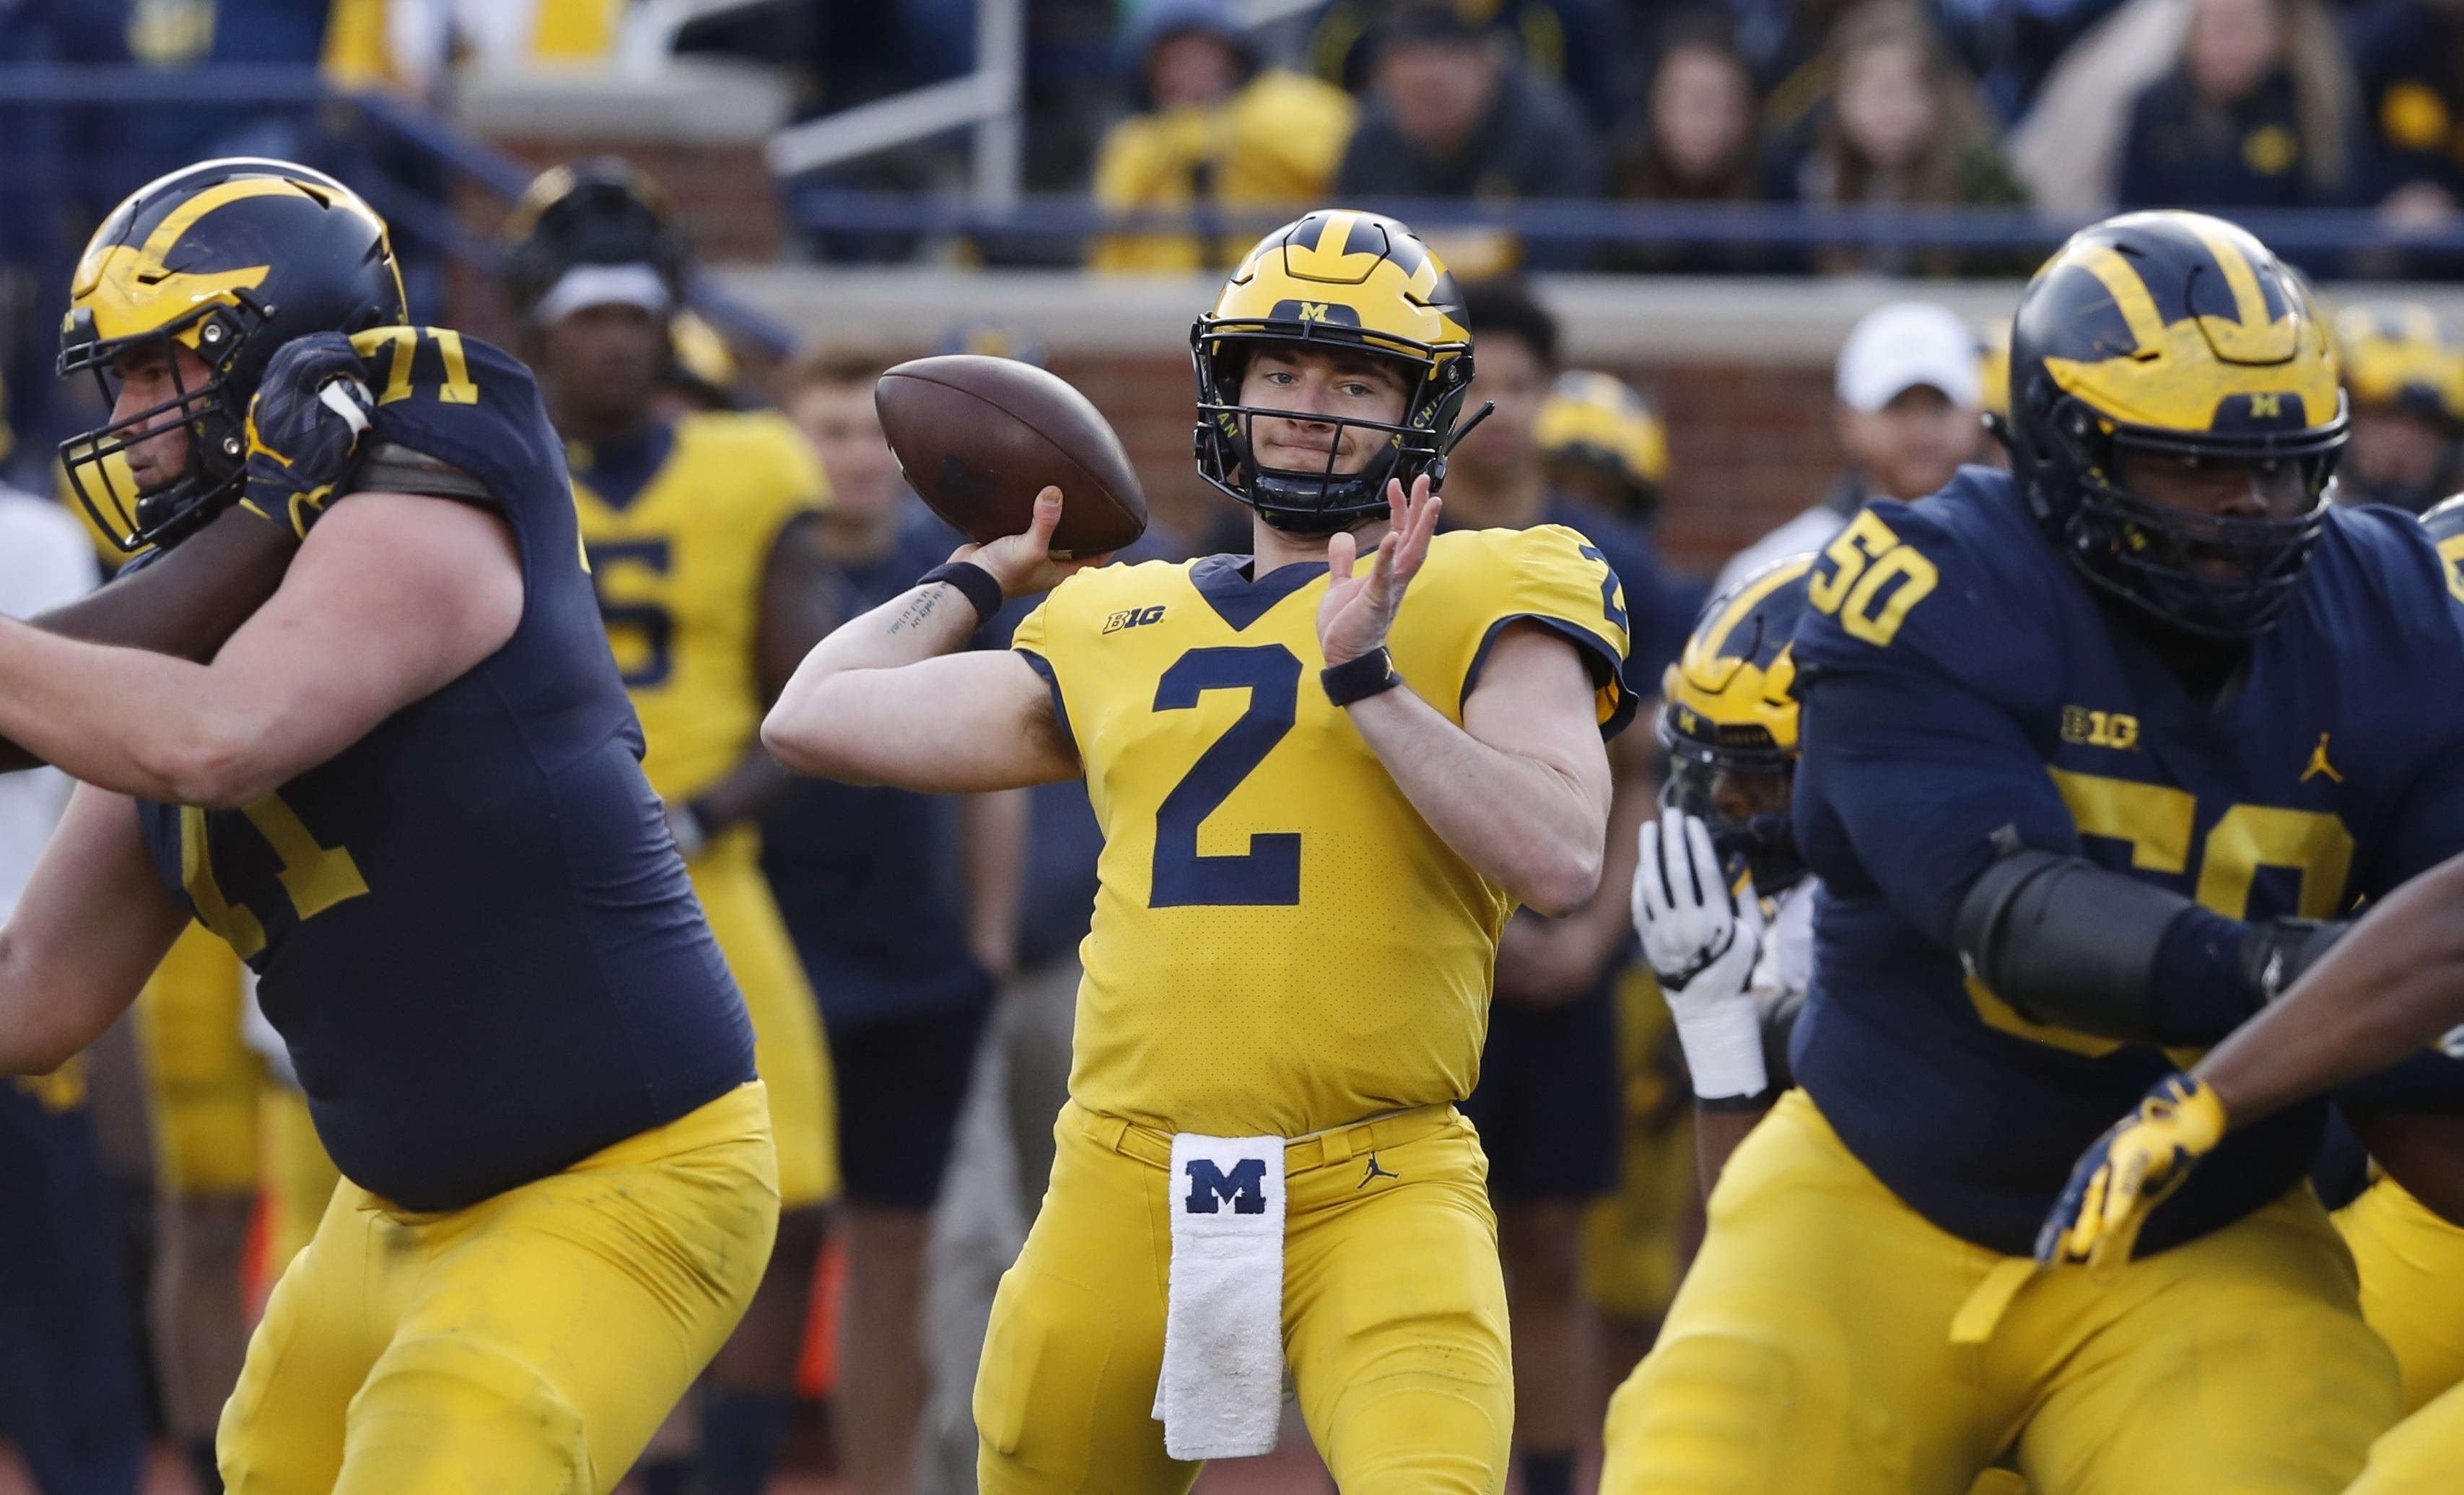 Harbaugh-led Michigan making transition to no-huddle spread